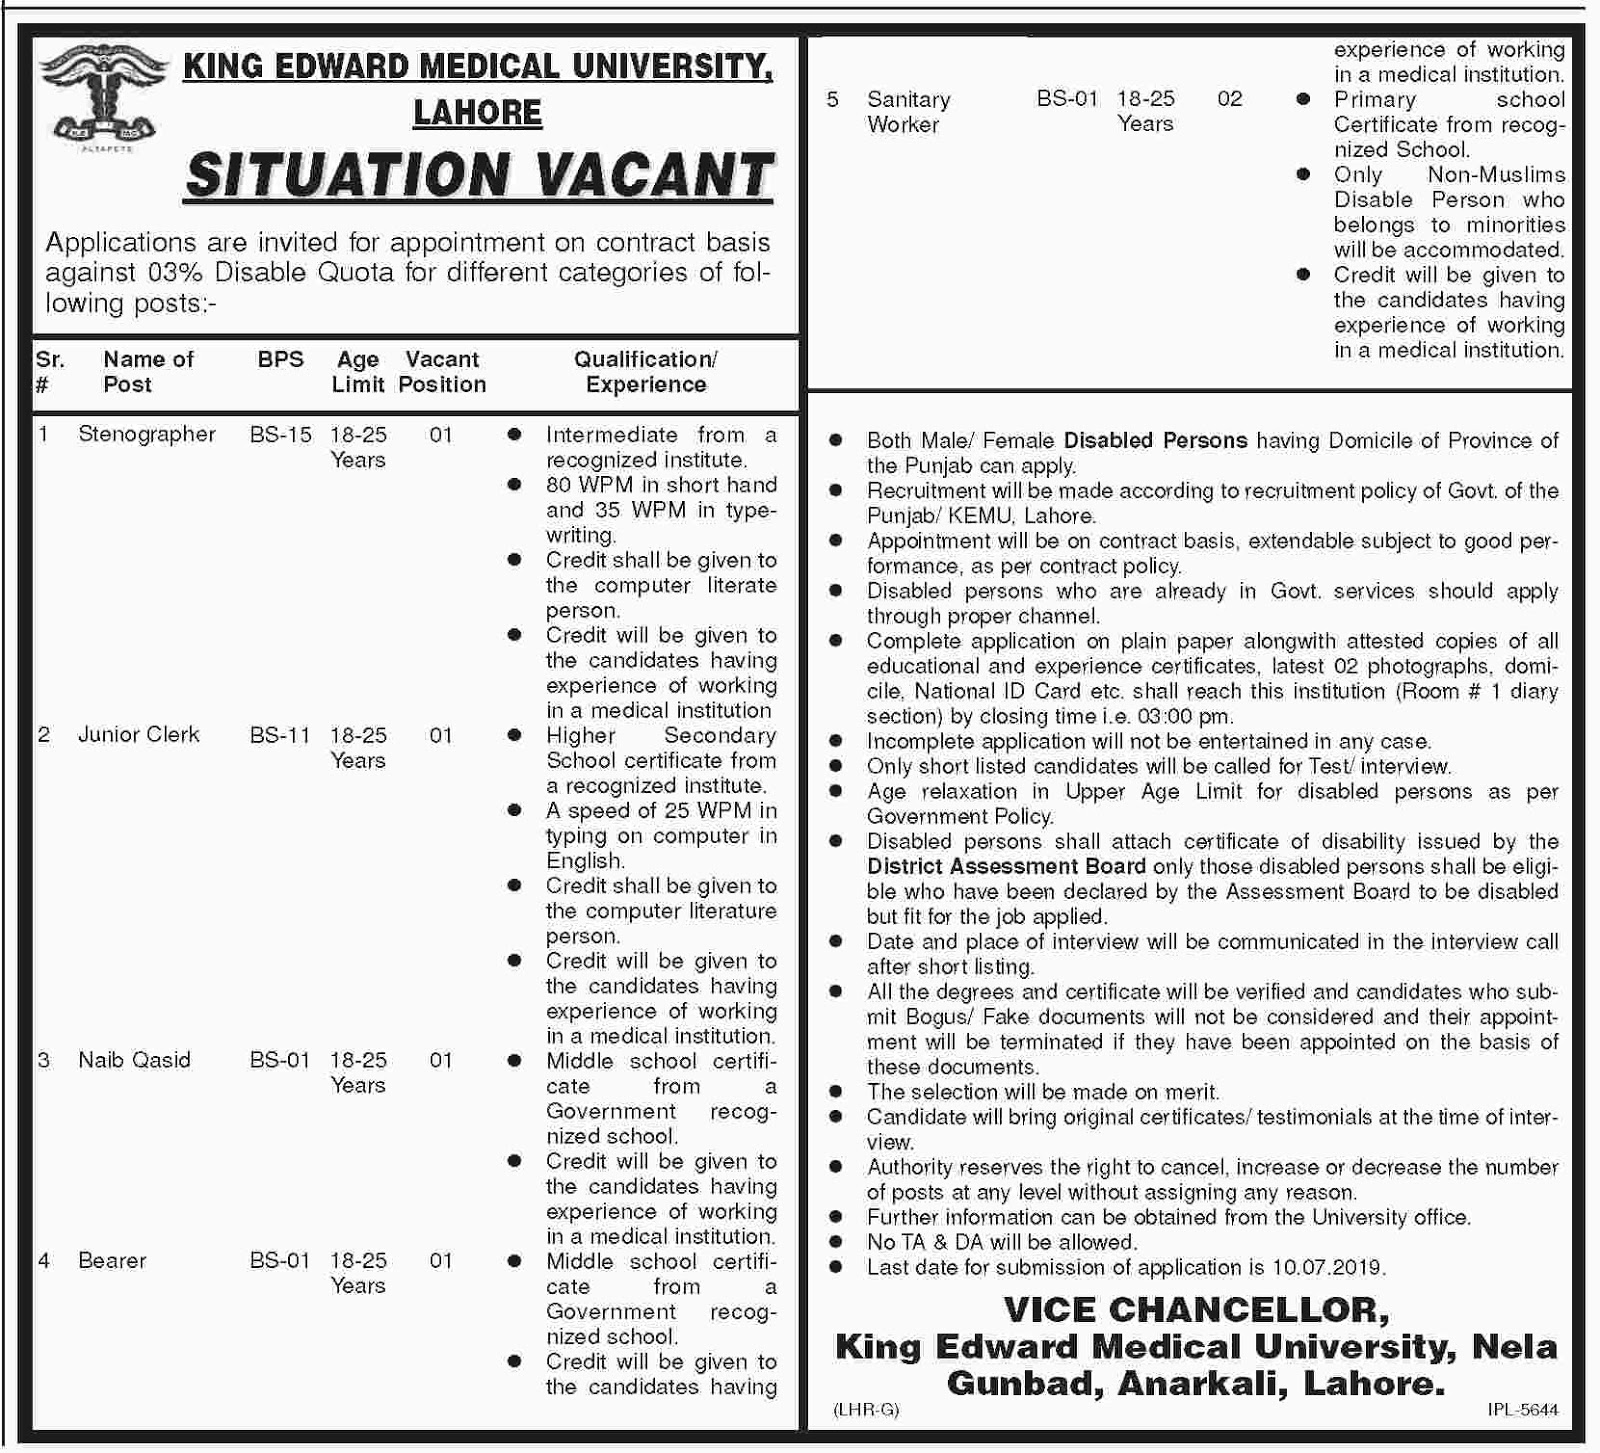 King Edward Medical University Lahore KEMU Jobs 27 June 2019